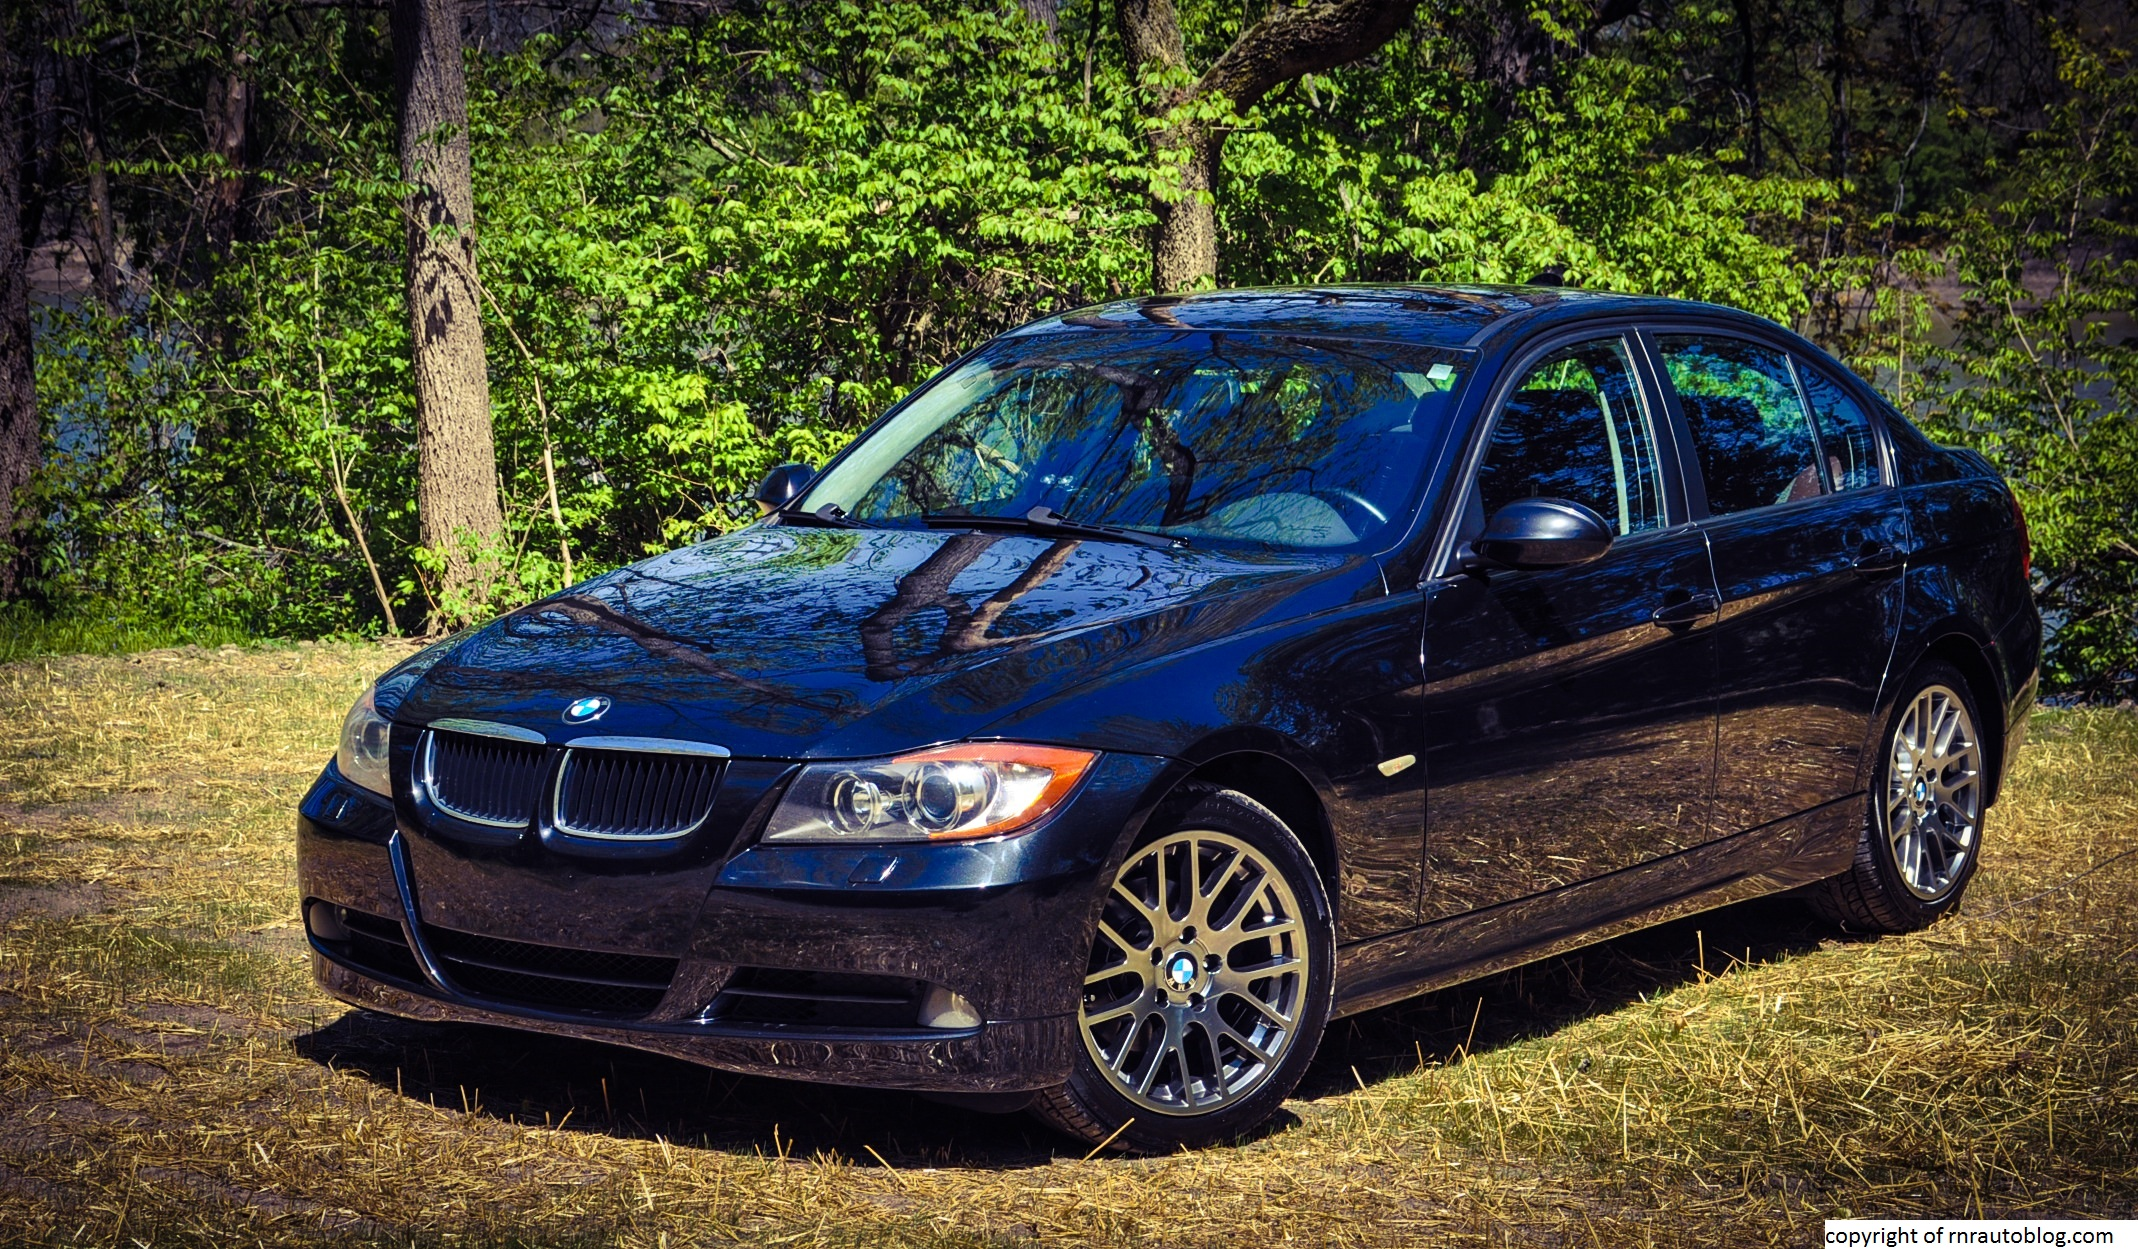 2006 Bmw 325xi >> 2006 BMW 325xi Photoshoot | RNR Automotive Blog